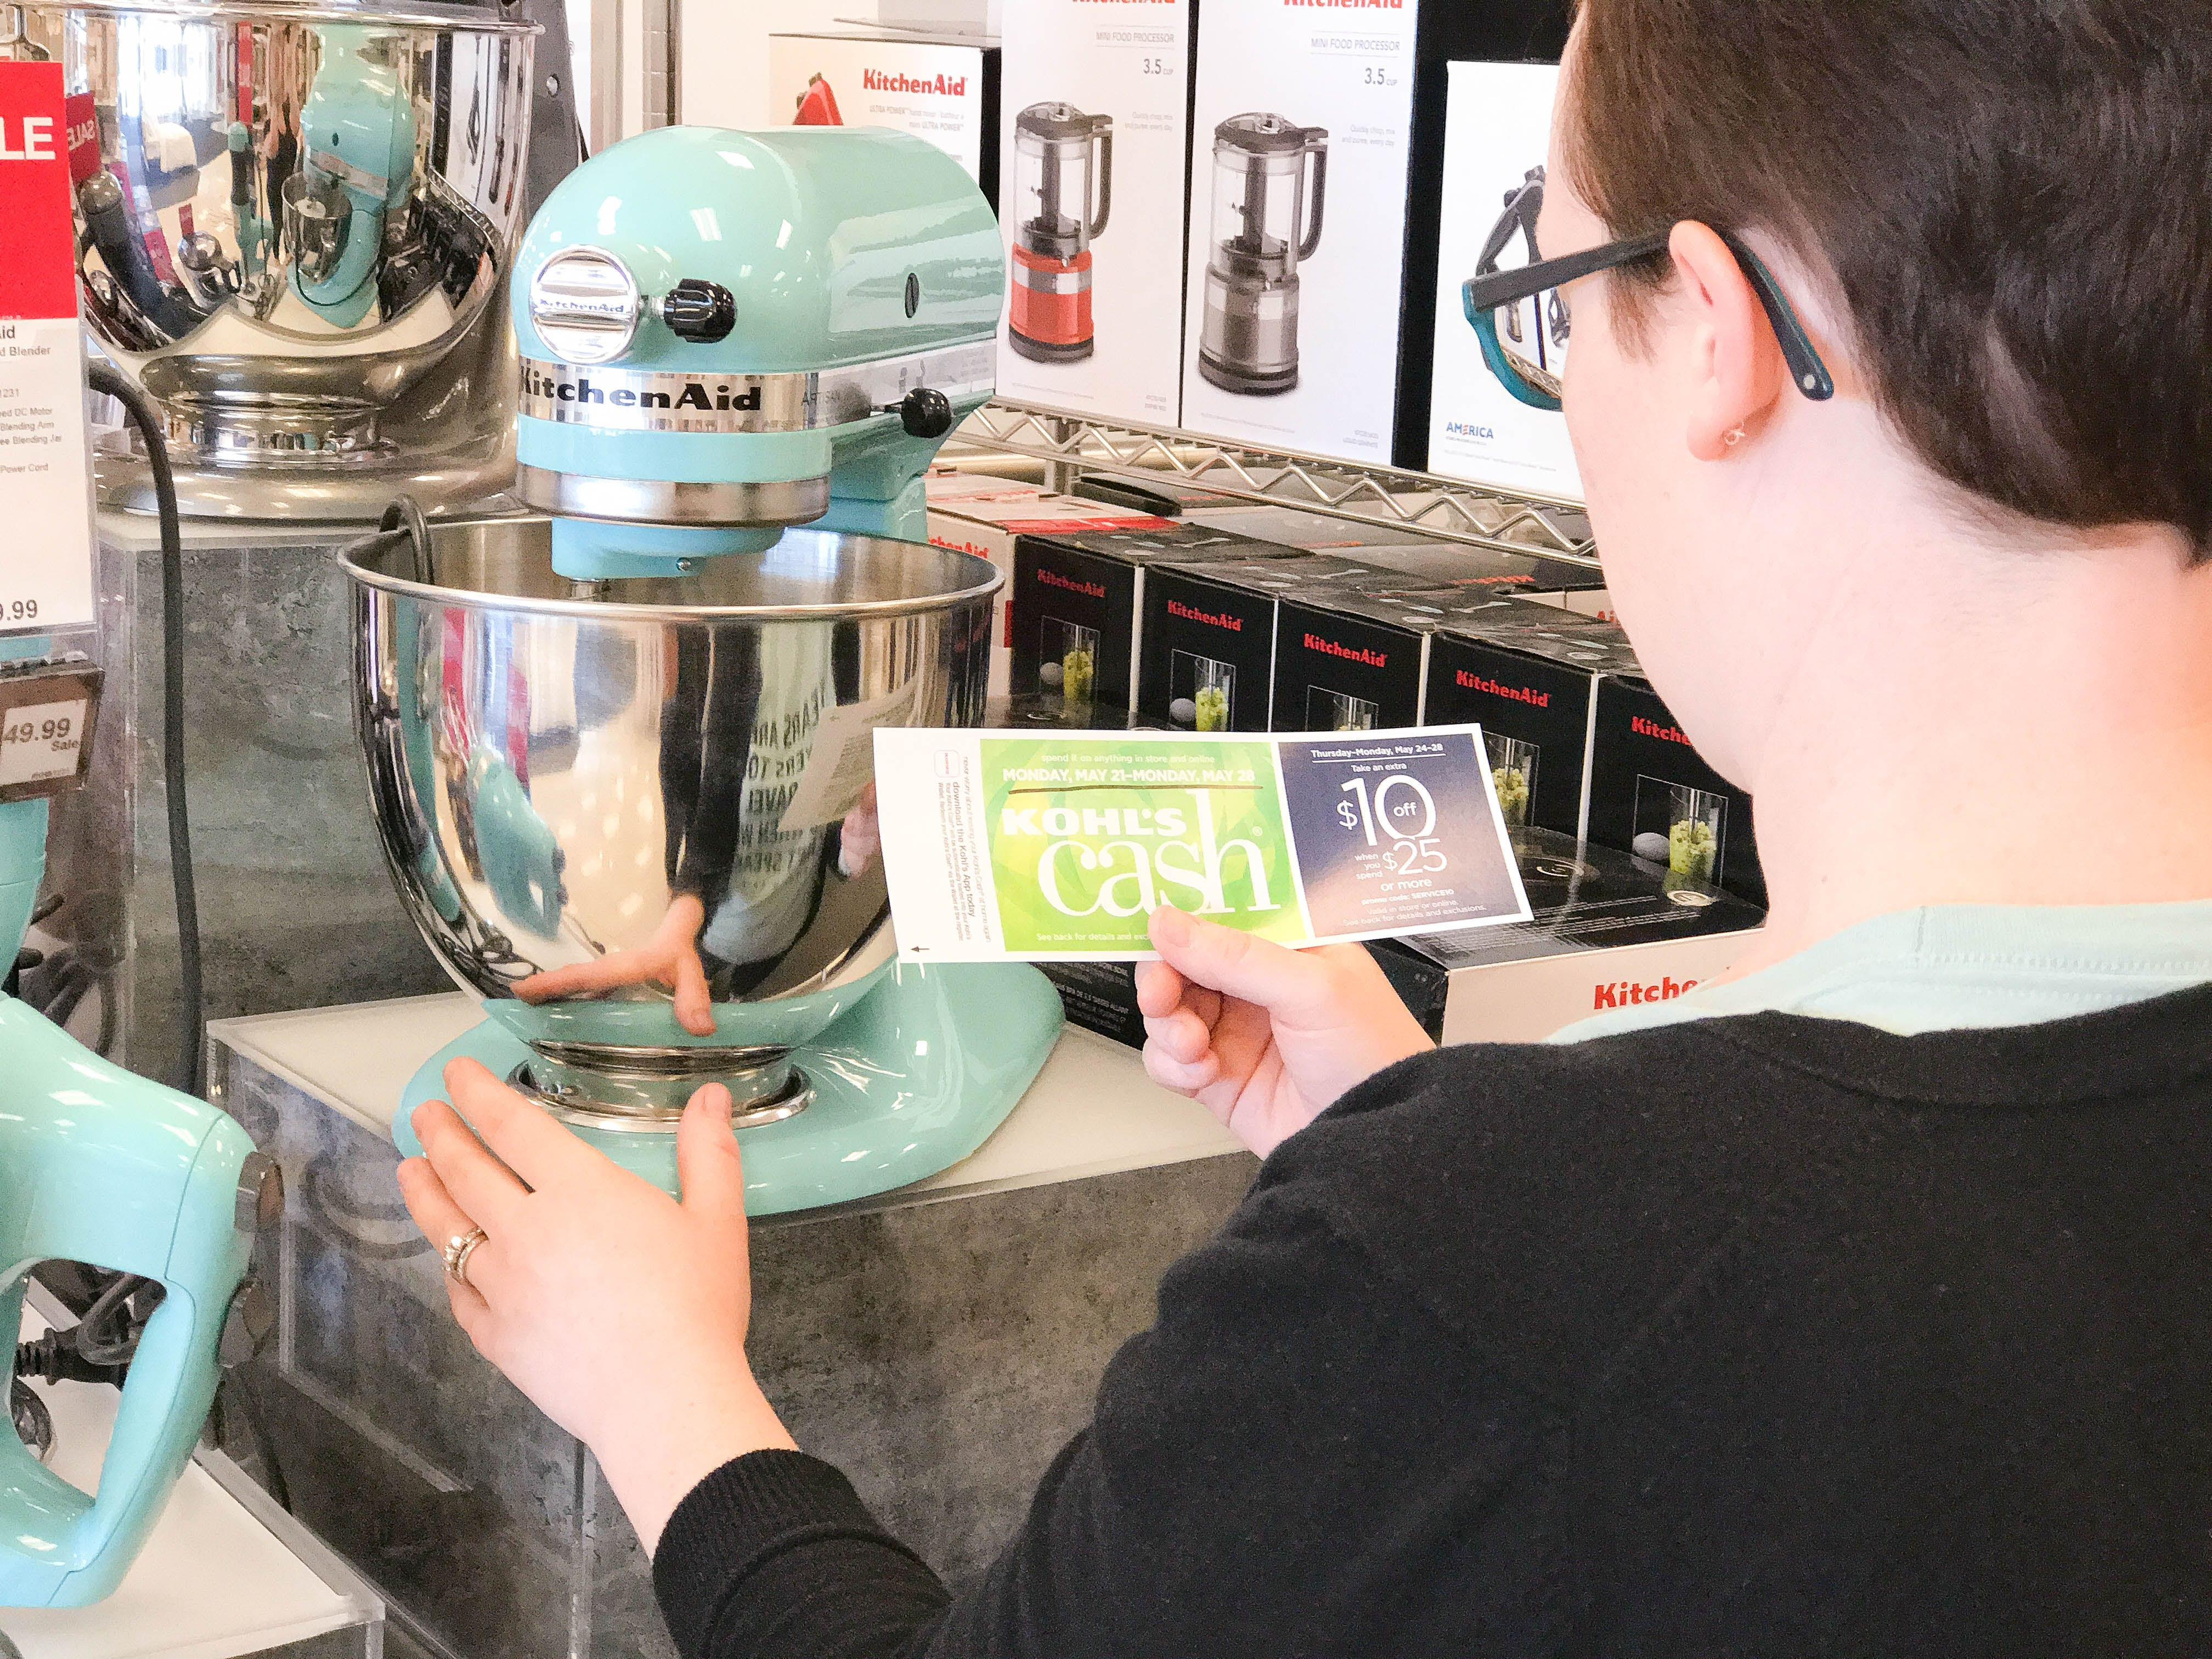 6 Foolproof Ways To Get A Kitchenaid Mixer For Half Price The Krazy Coupon Lady